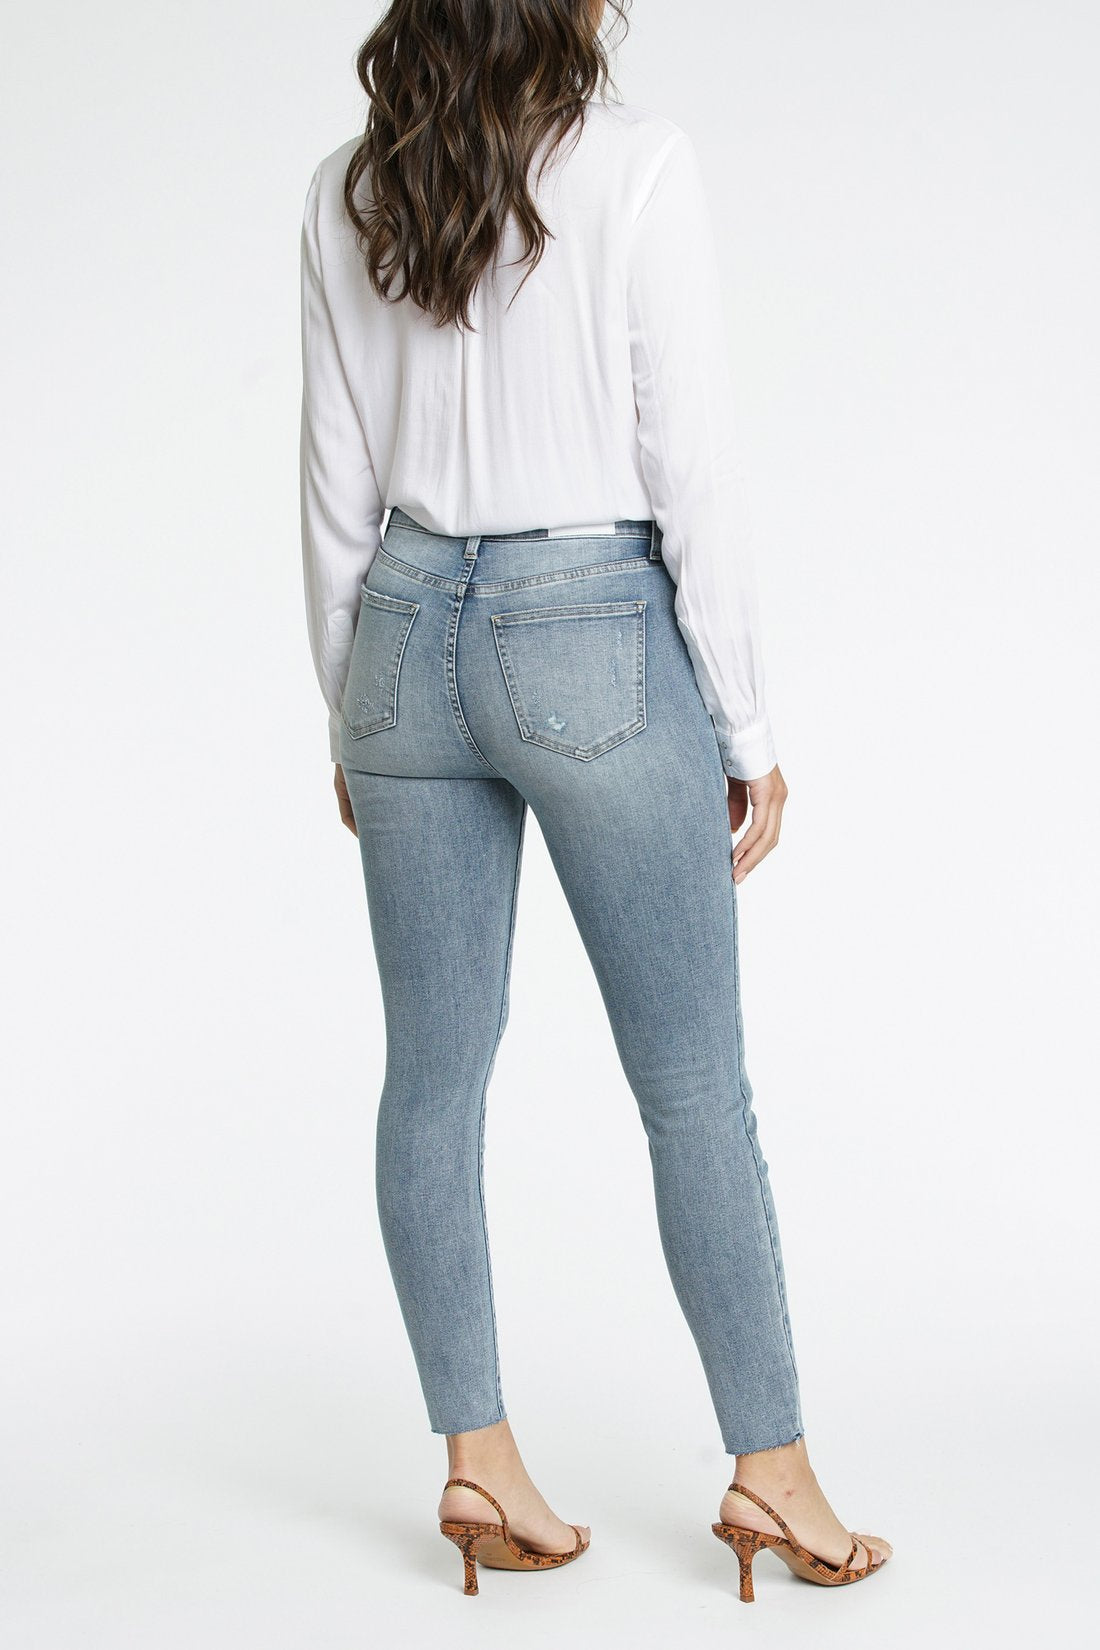 Aline High Rise Skinny Marmont Jeans -Picnic-sf